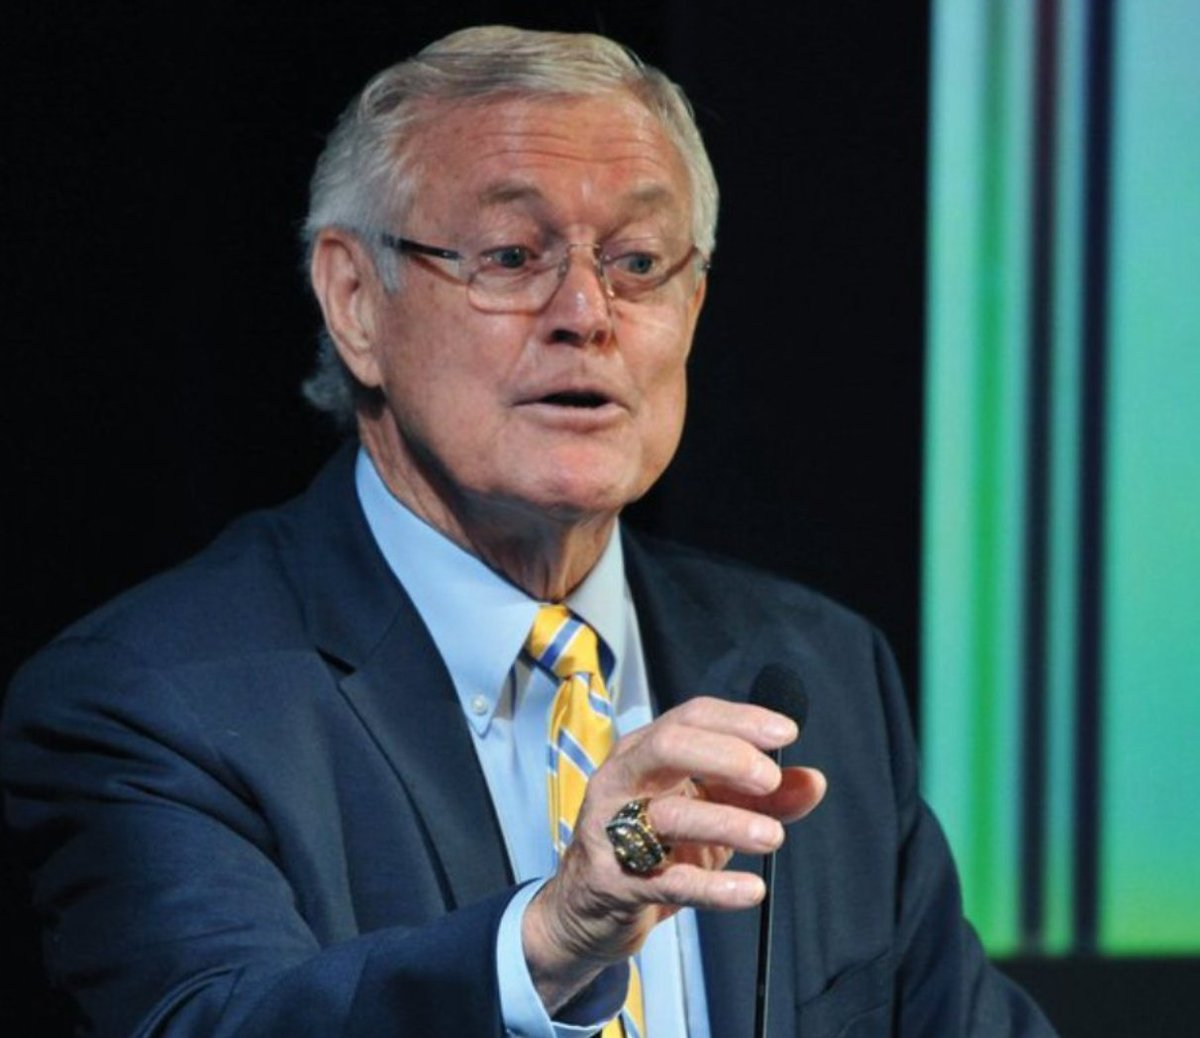 Dick Vermeil Said That Deshaun Watson Needs To Worry About Leading His Football Team And That The Texans Need To Change His Diaper